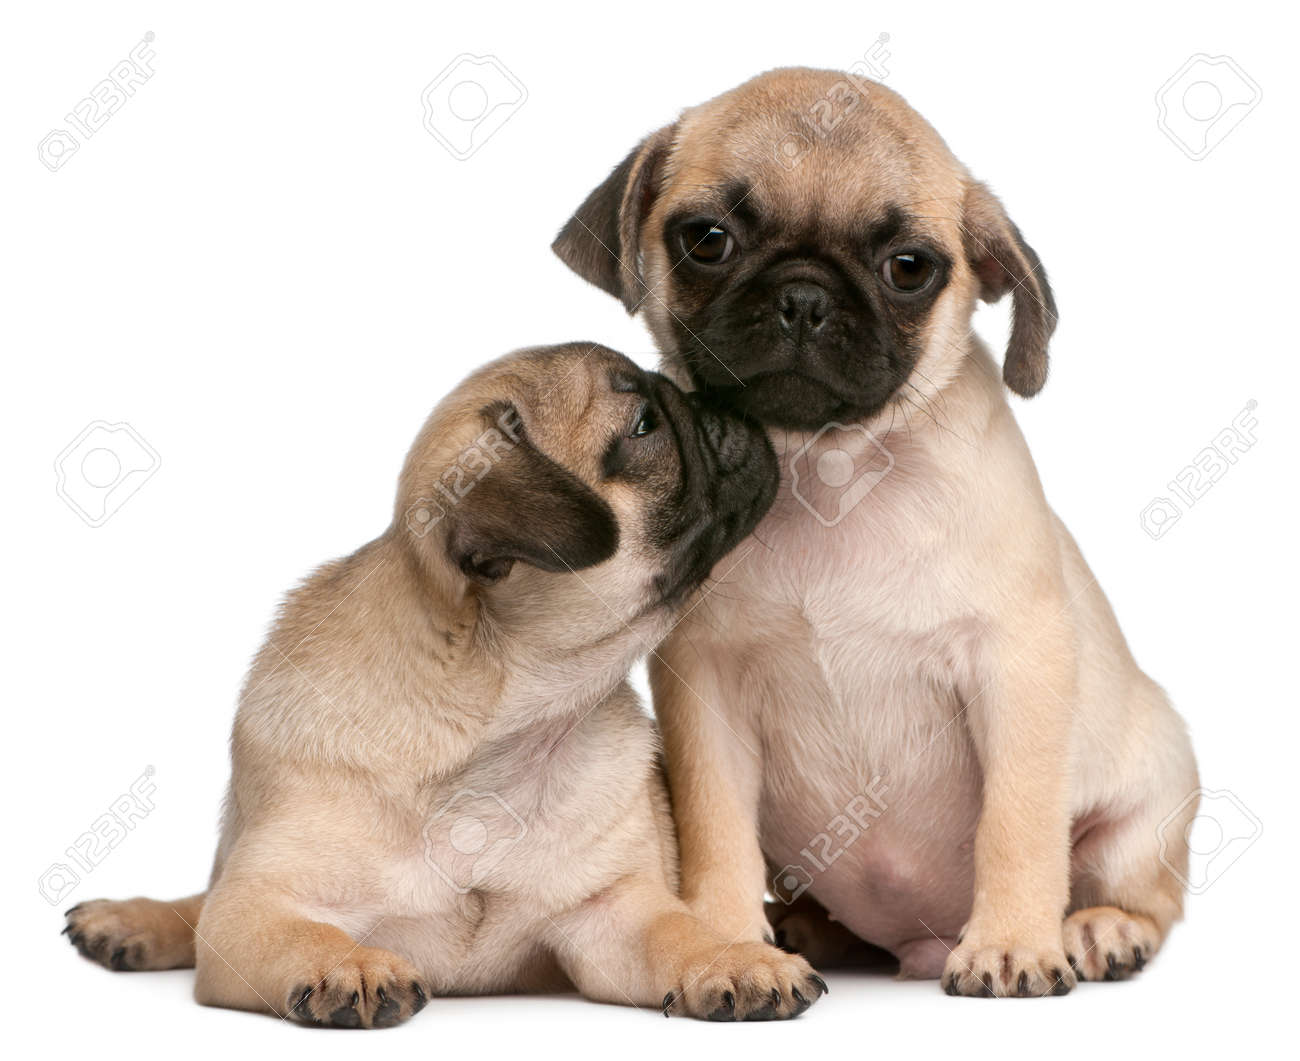 Two Pug Puppies 8 Weeks Old In Front Of White Background Stock Photo Picture And Royalty Free Image Image 110985645